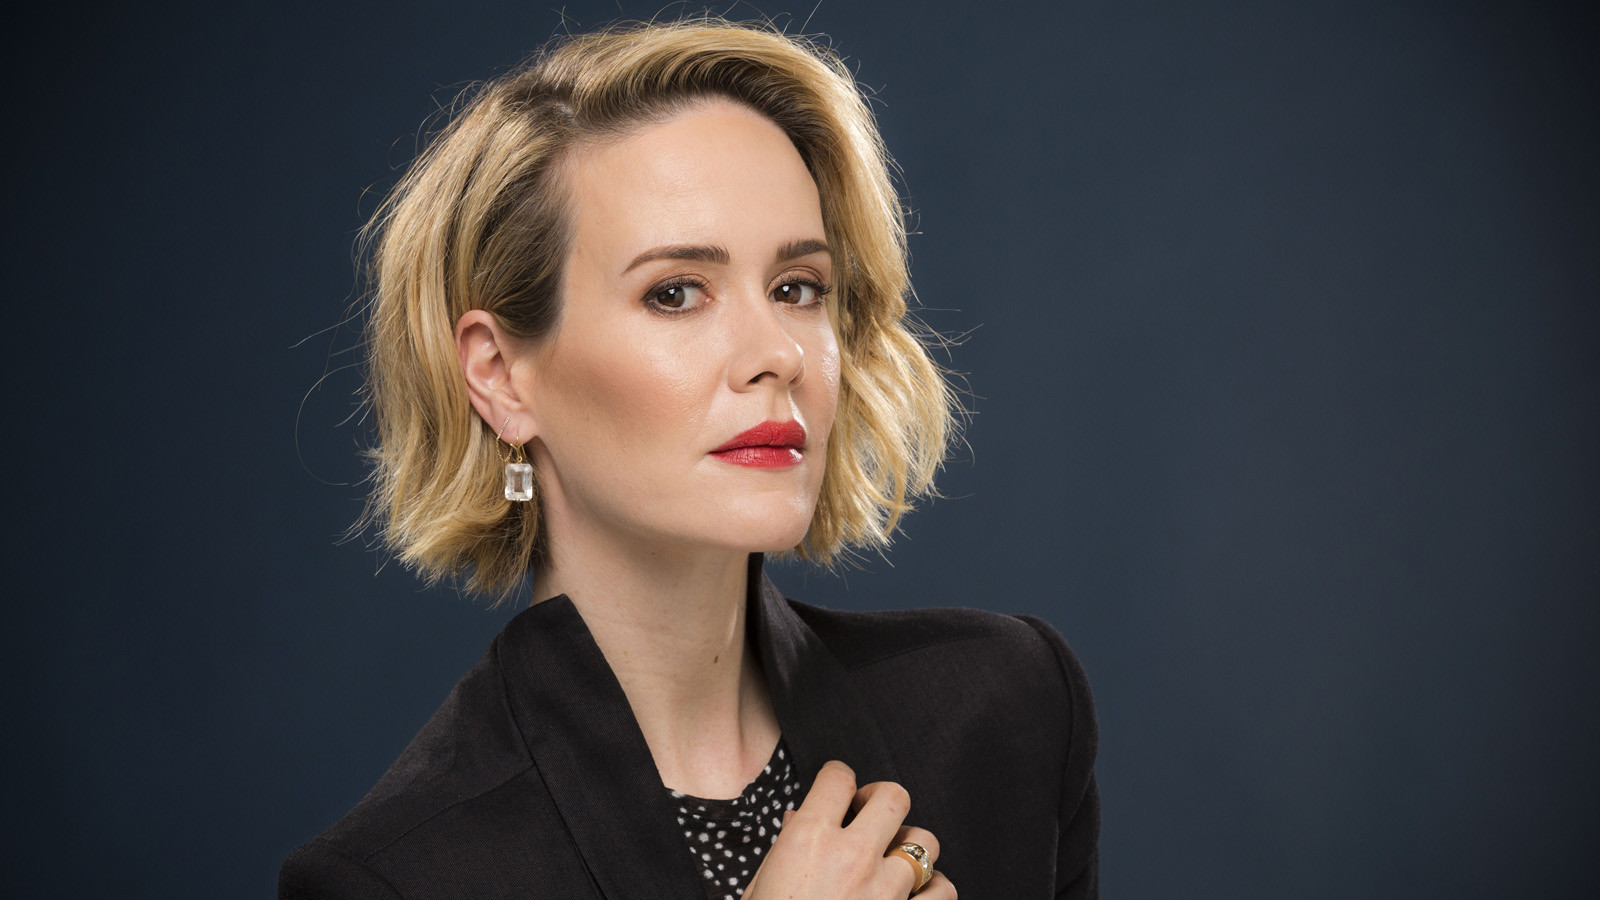 sarah paulson makeup wallpaper 55735